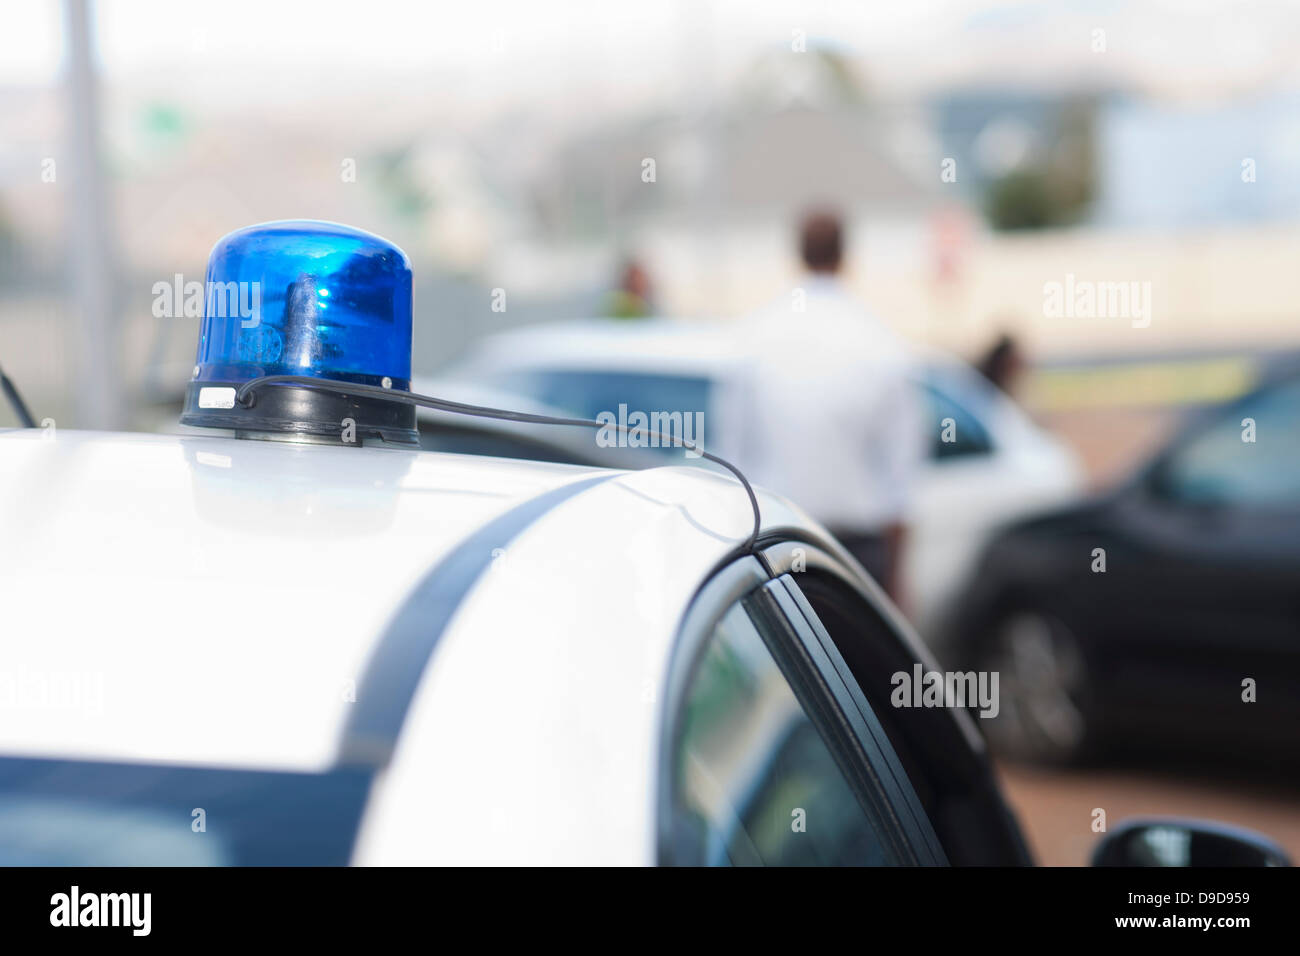 View of car accident scene from flashlights on police car - Stock Image